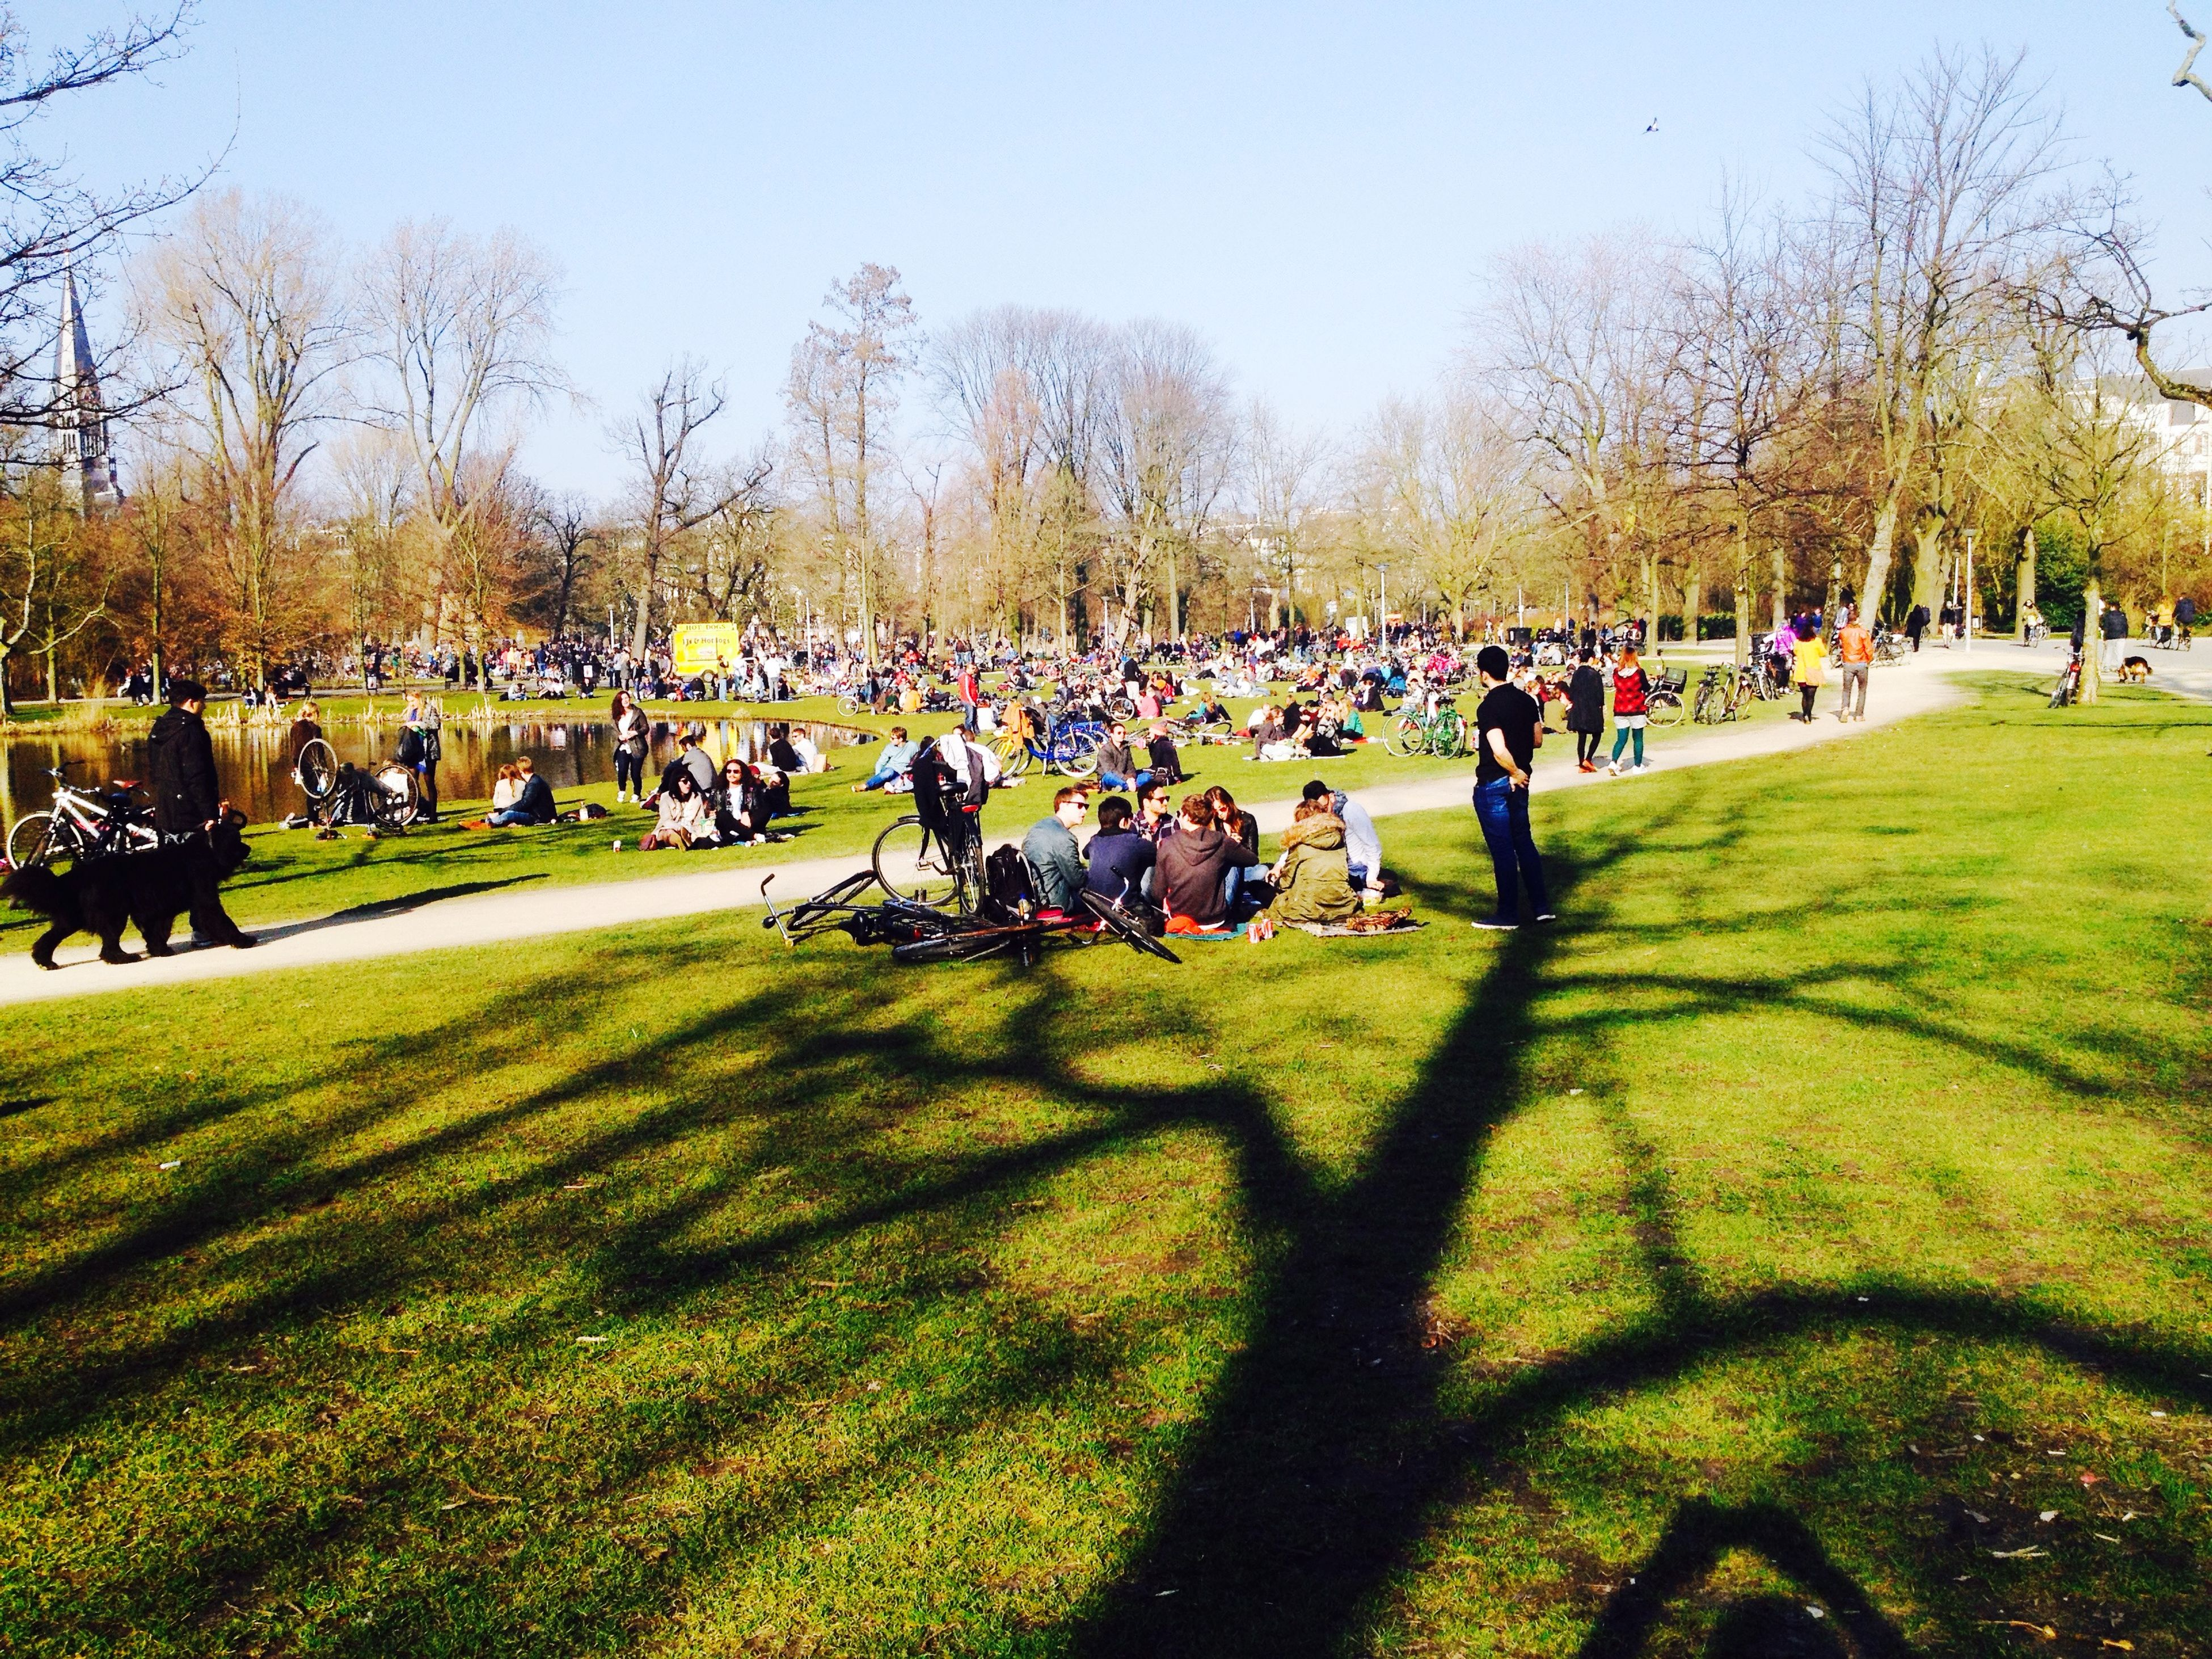 large group of people, grass, men, tree, person, leisure activity, lifestyles, park - man made space, mixed age range, green color, field, grassy, crowd, park, lawn, clear sky, sport, relaxation, group of people